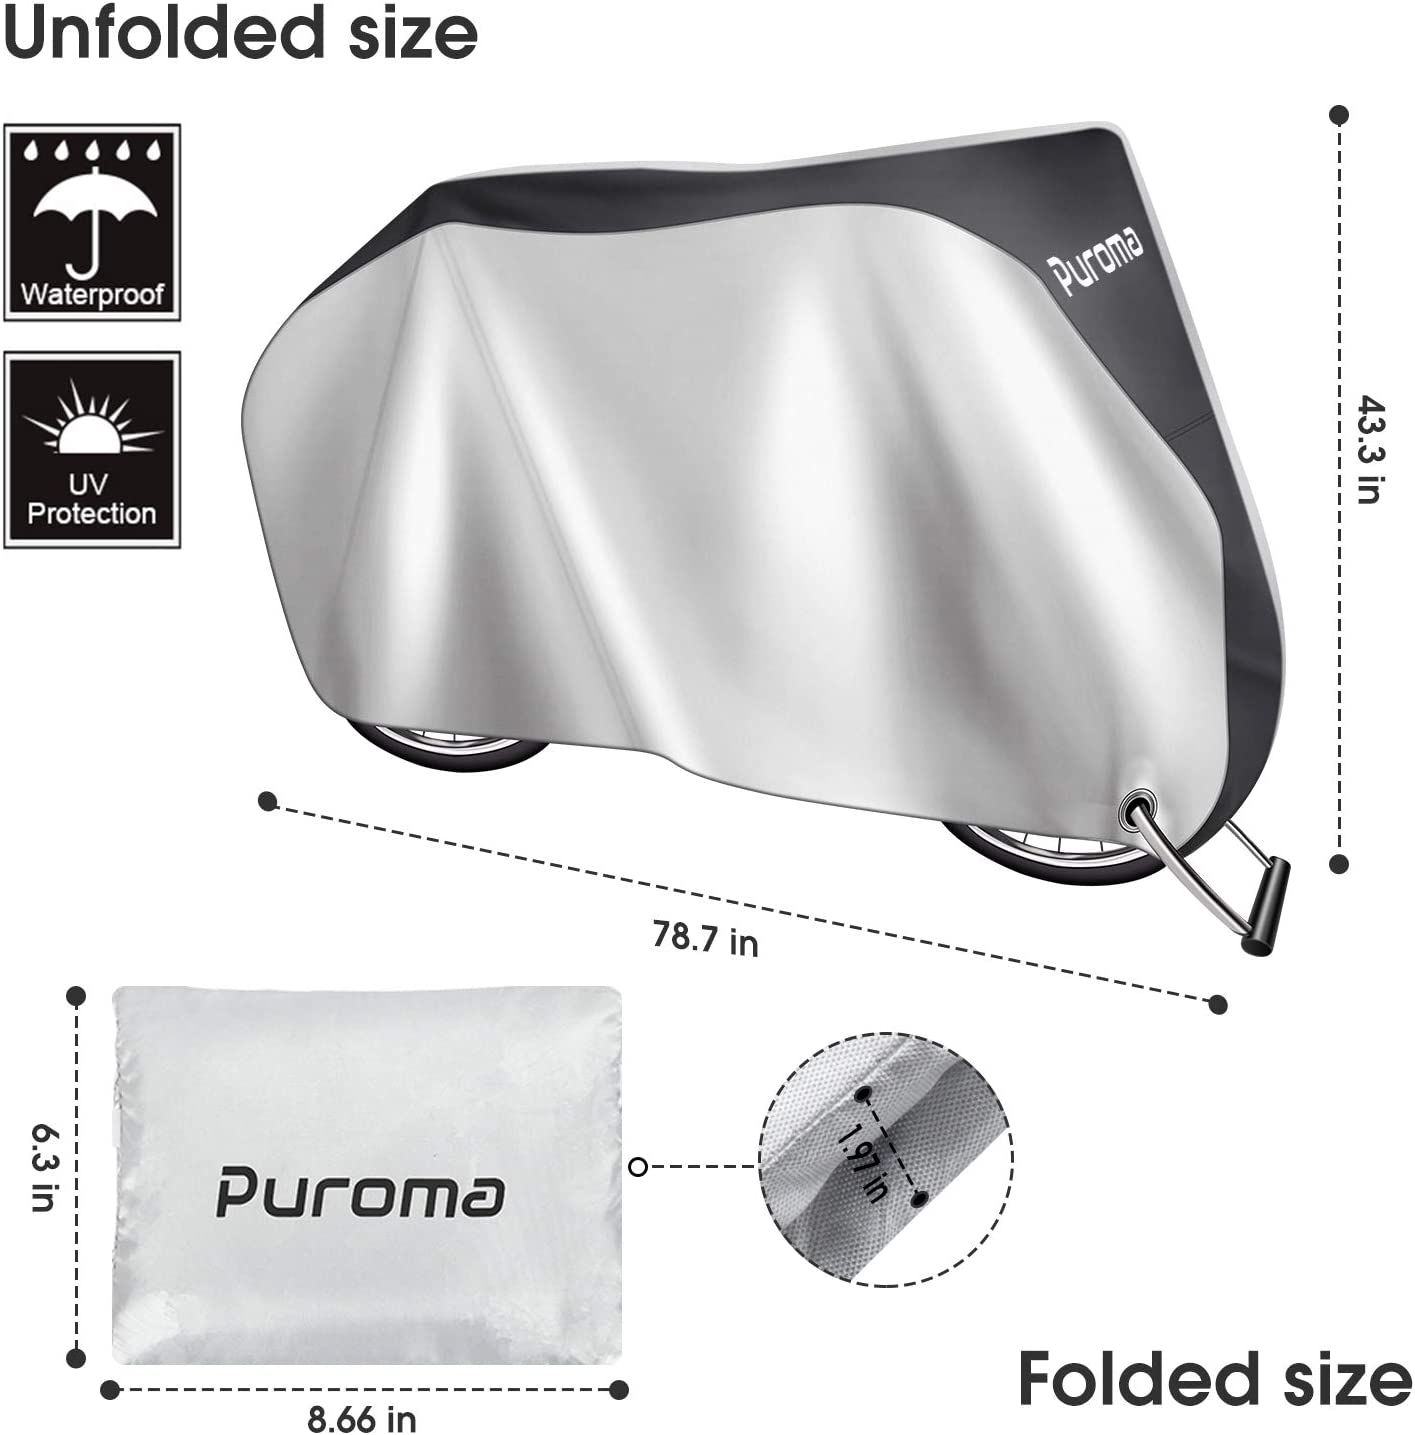 Puroma Bike Cover XL 210D Outdoor Waterproof Bicycle Covers Rain Sun UV Dust Wind Proof with Lock Hole Ideal for Mountain Road Electric Bike